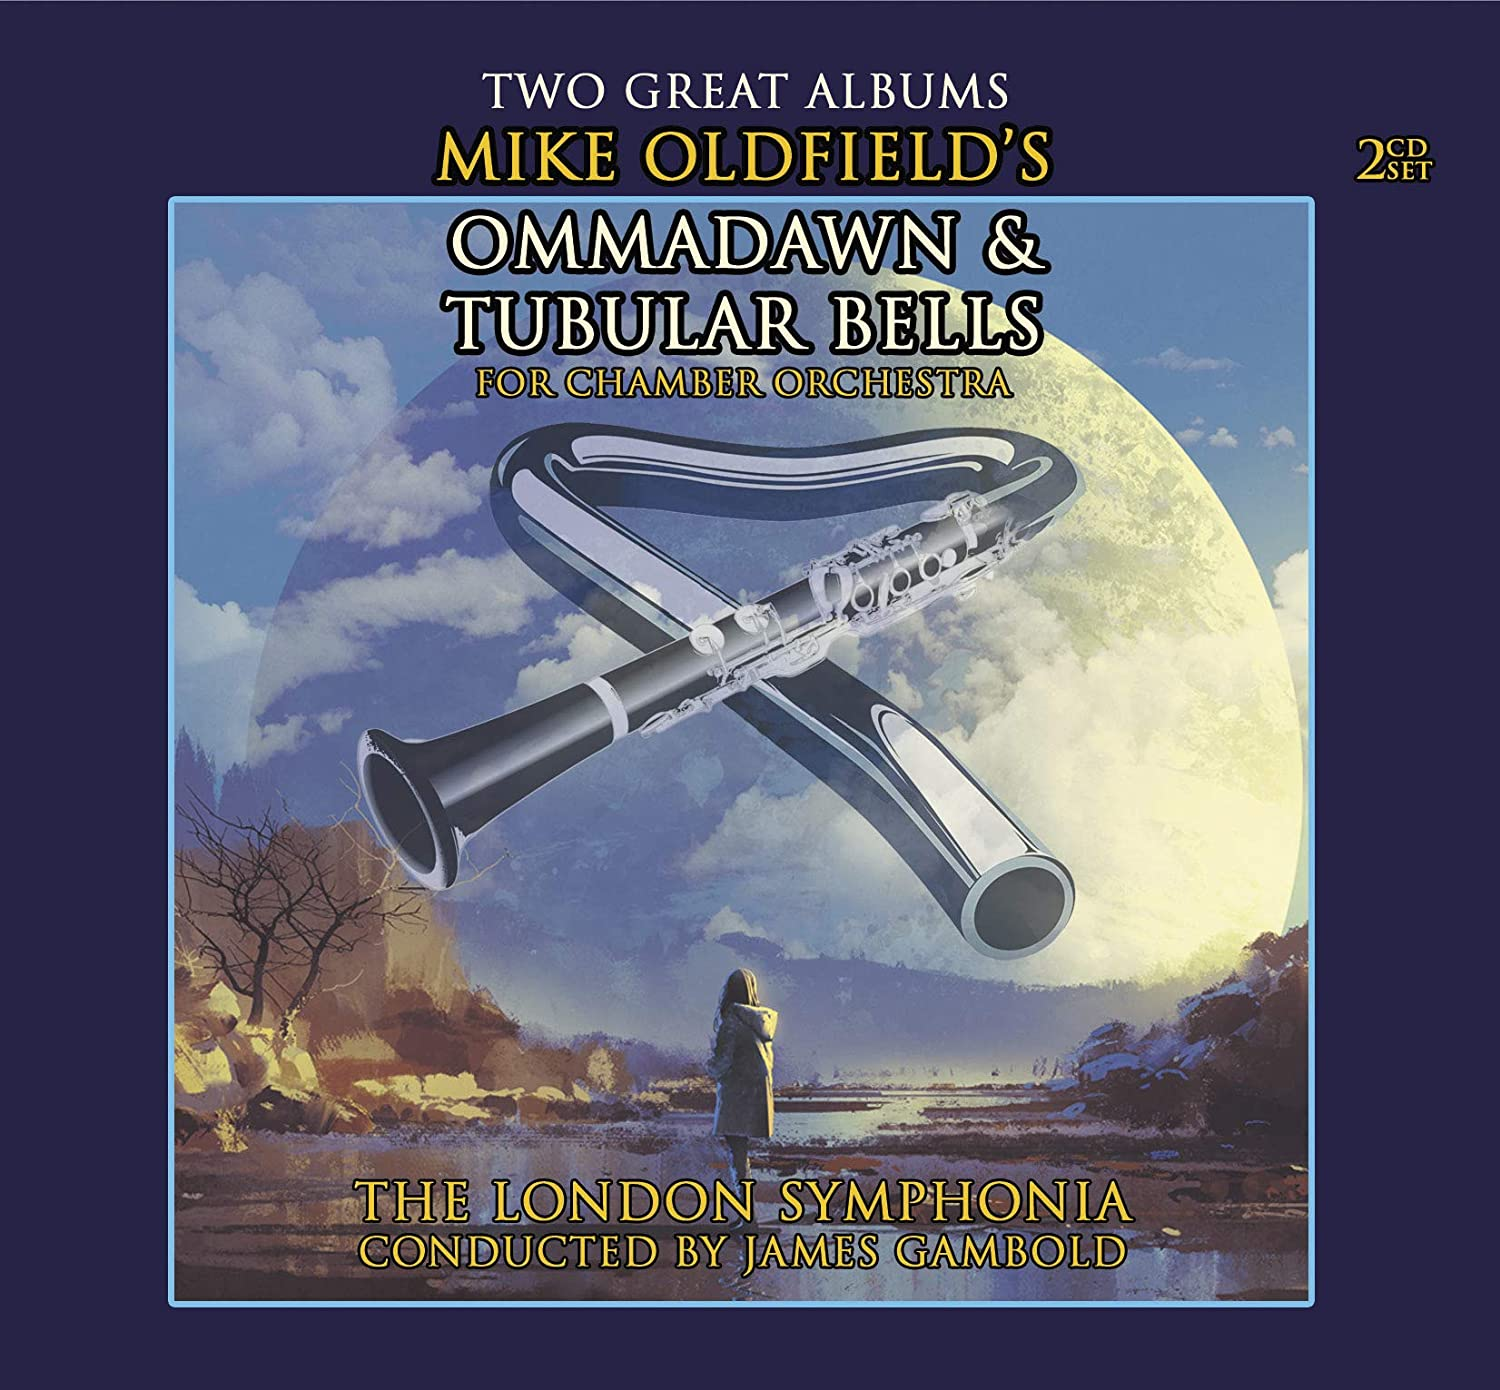 MIKE OLDFIELD'S OMMADAWN AND TUBULAR BELLS: DOUBLE CD